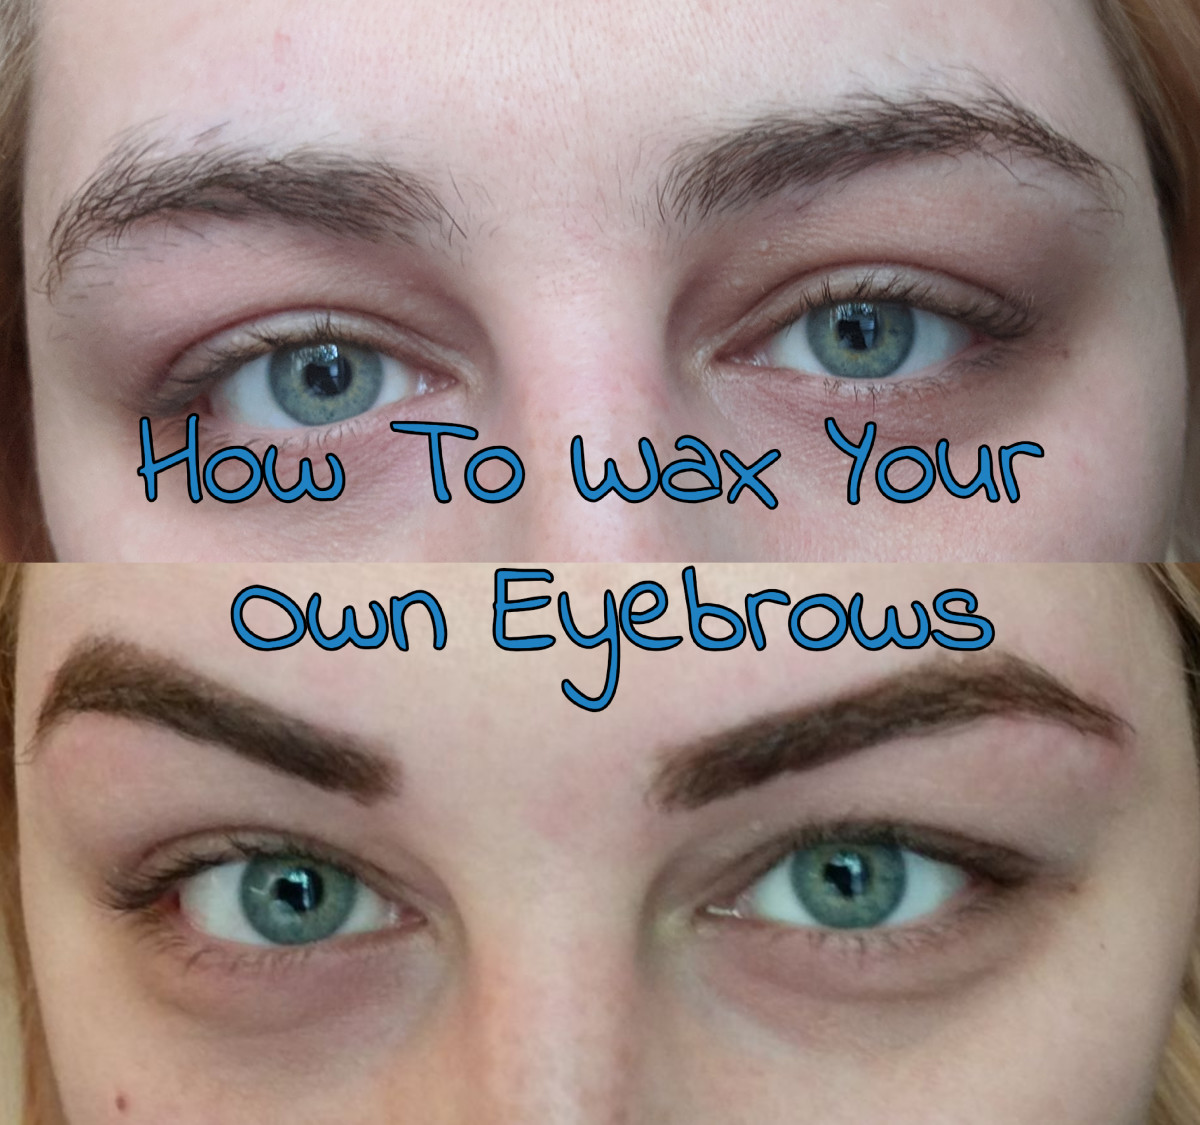 My before and after DIY eyebrow waxing photos.